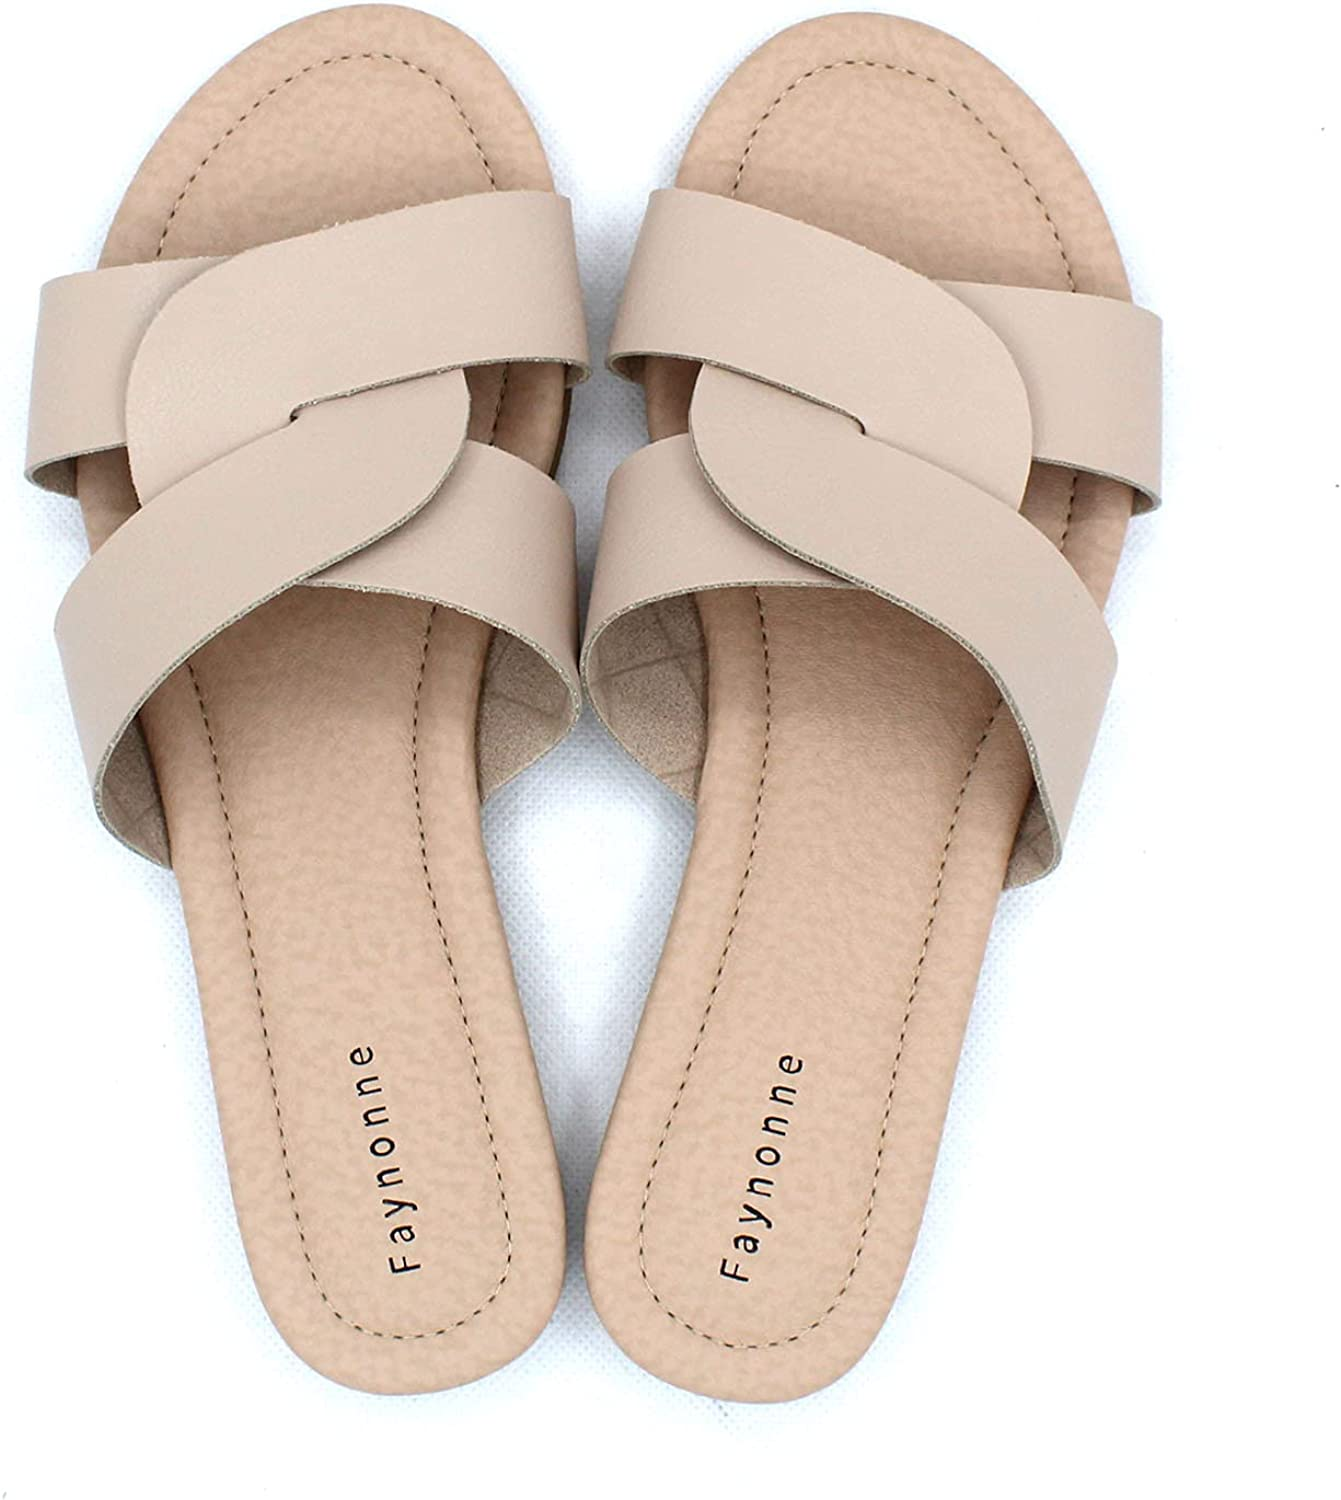 Faynonne sandals for women casual summer,Wedge Sandals Comfortable Leather Platform Slippers Women's Carly slide Sandal with Memory Foam Black Beige